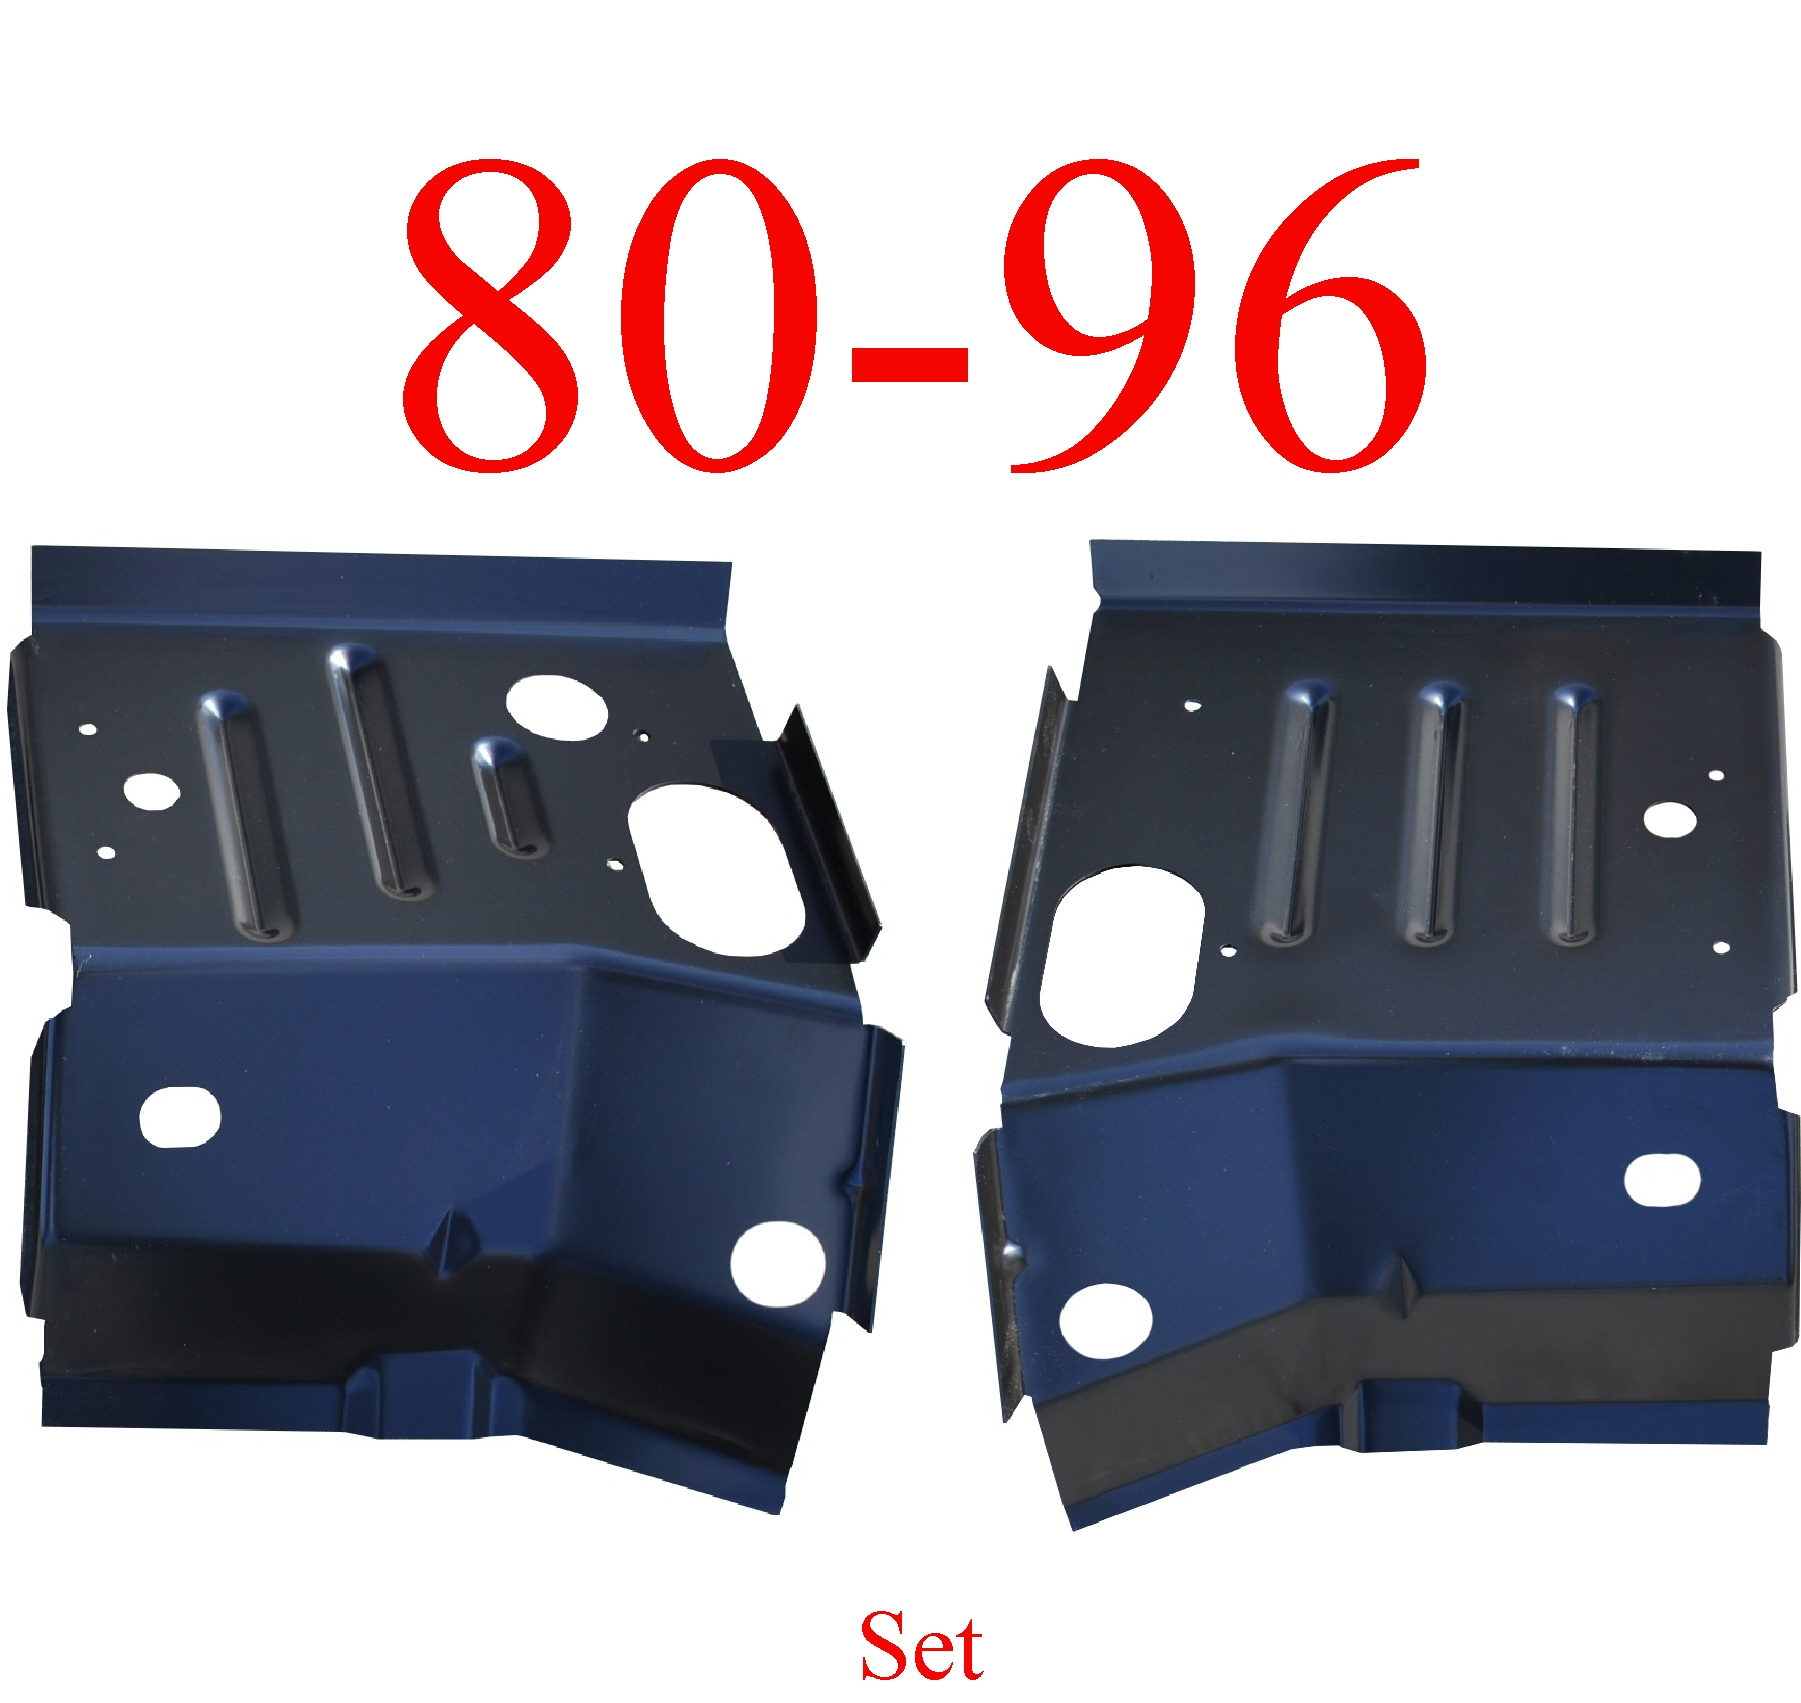 80-96 Ford Cab Mount Floor Support Set